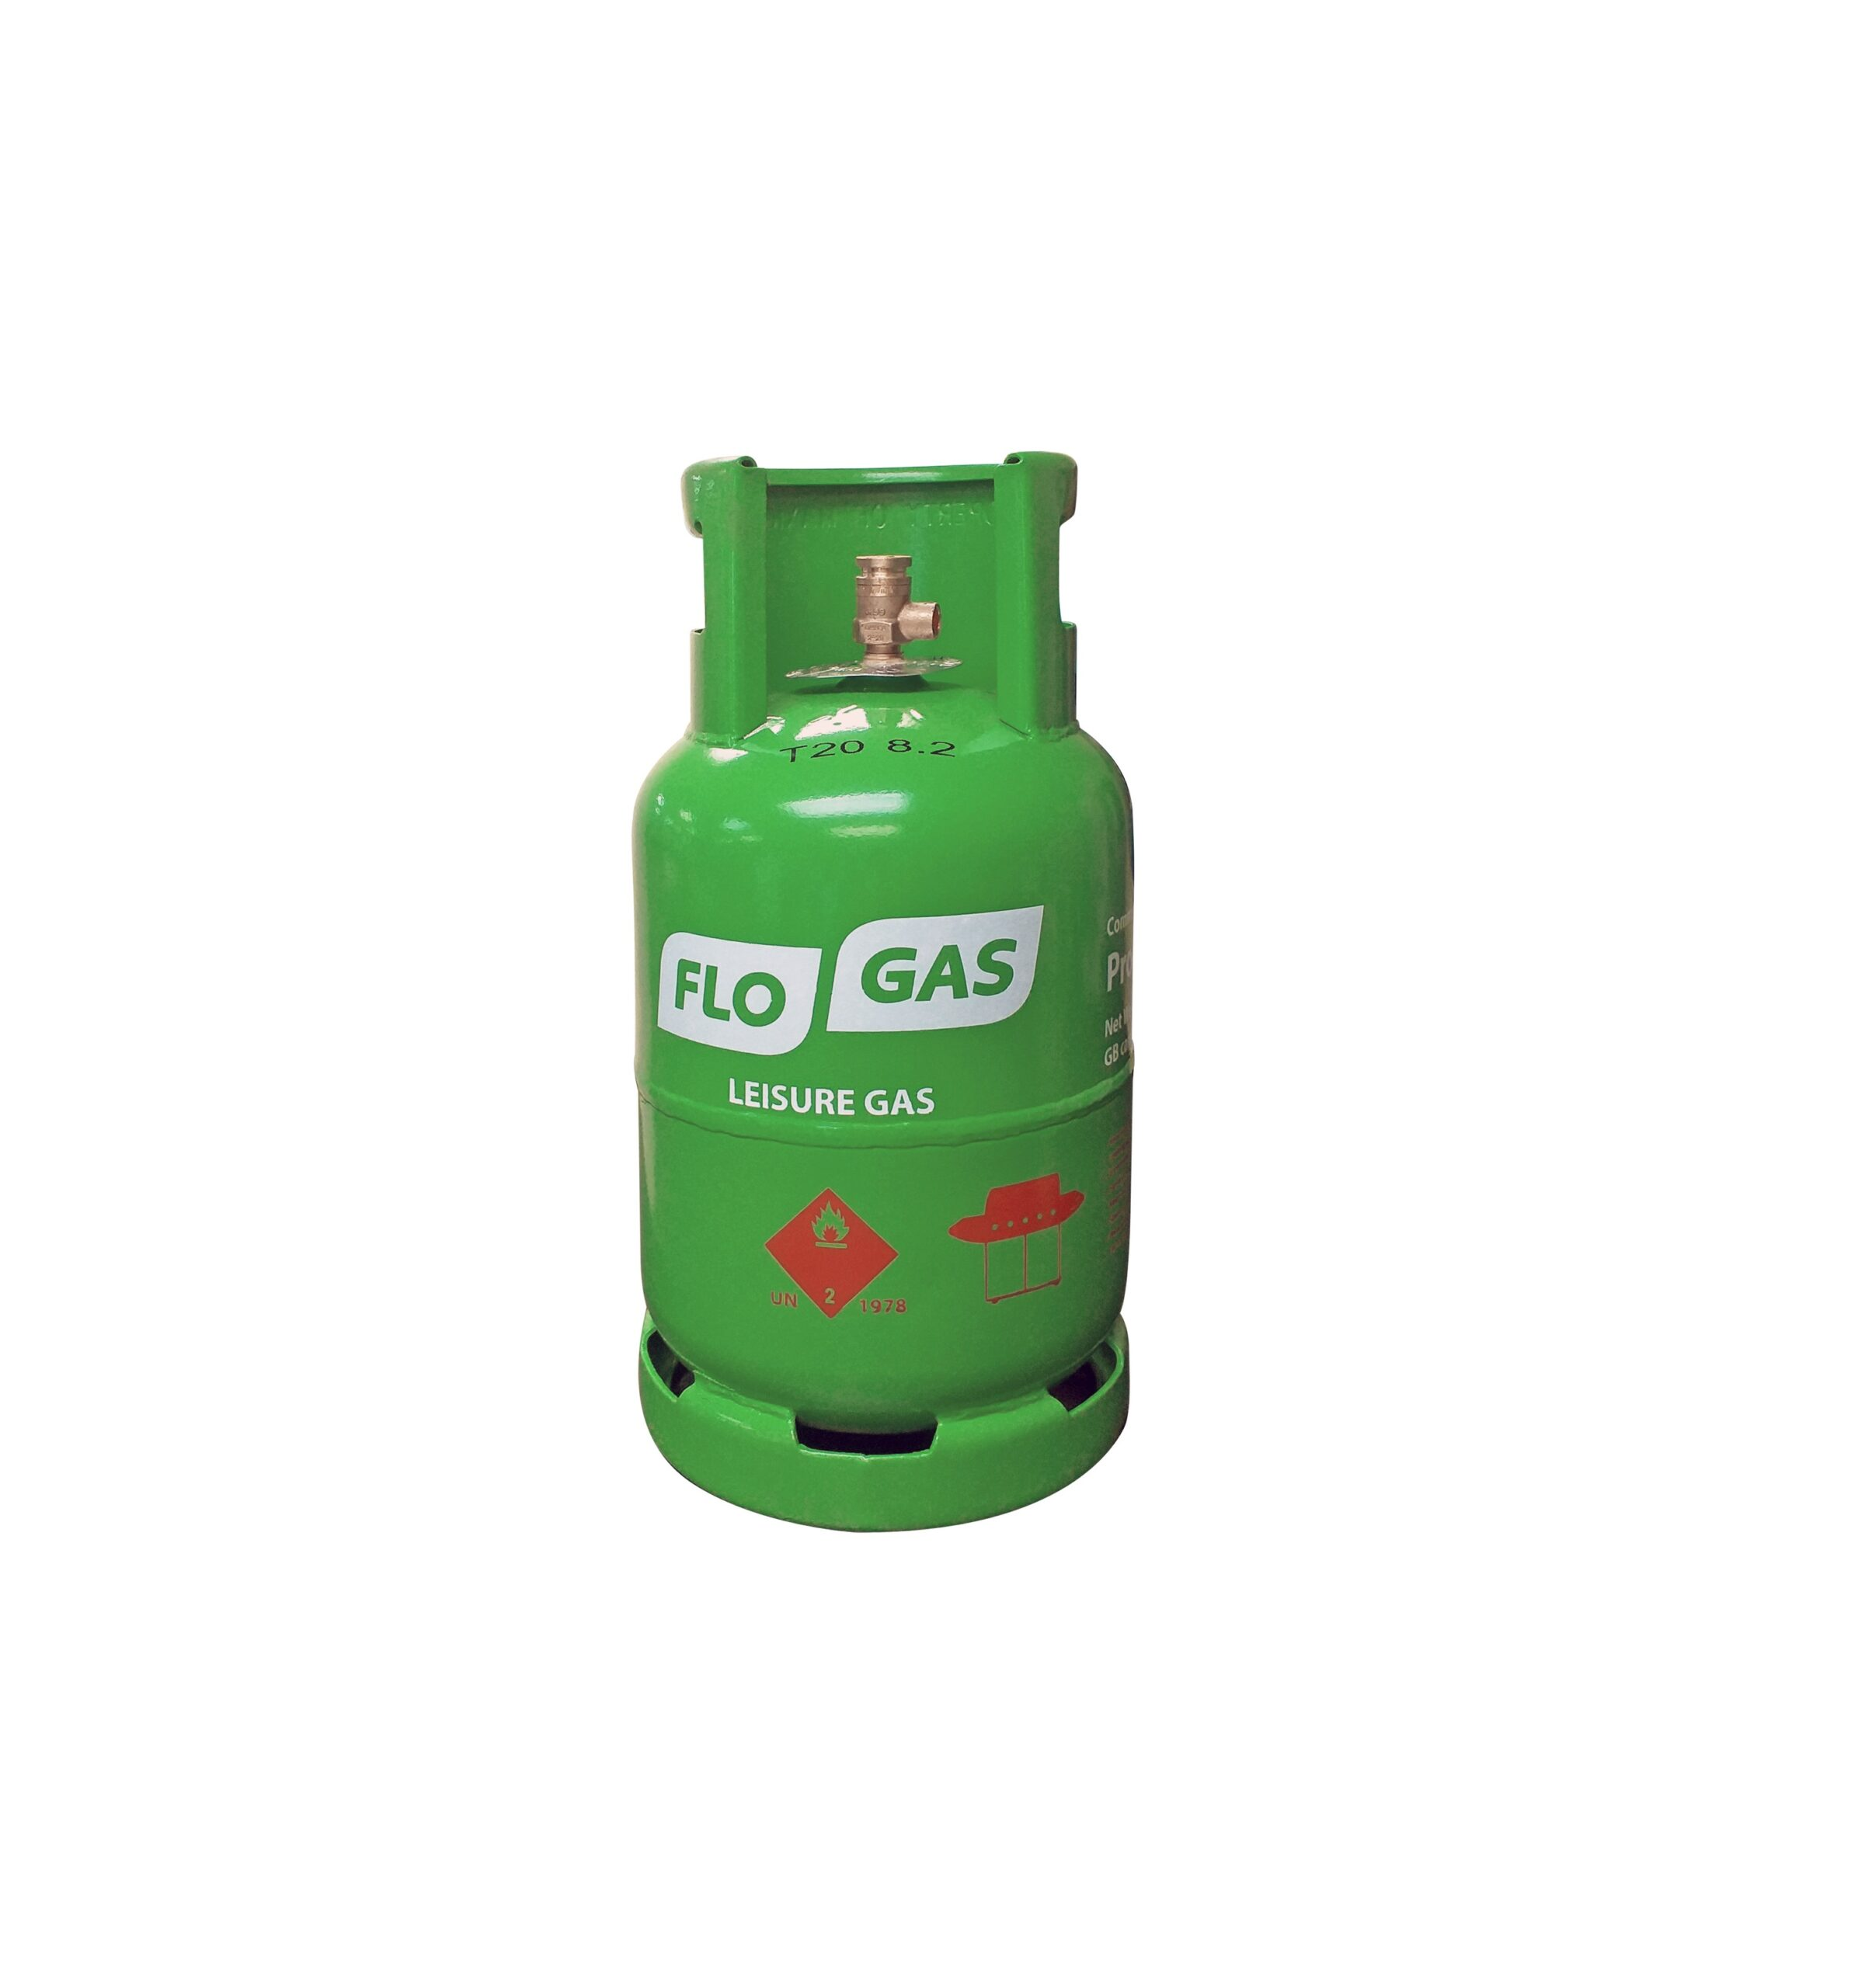 FloGas 6kg Leisure Gas Bottle